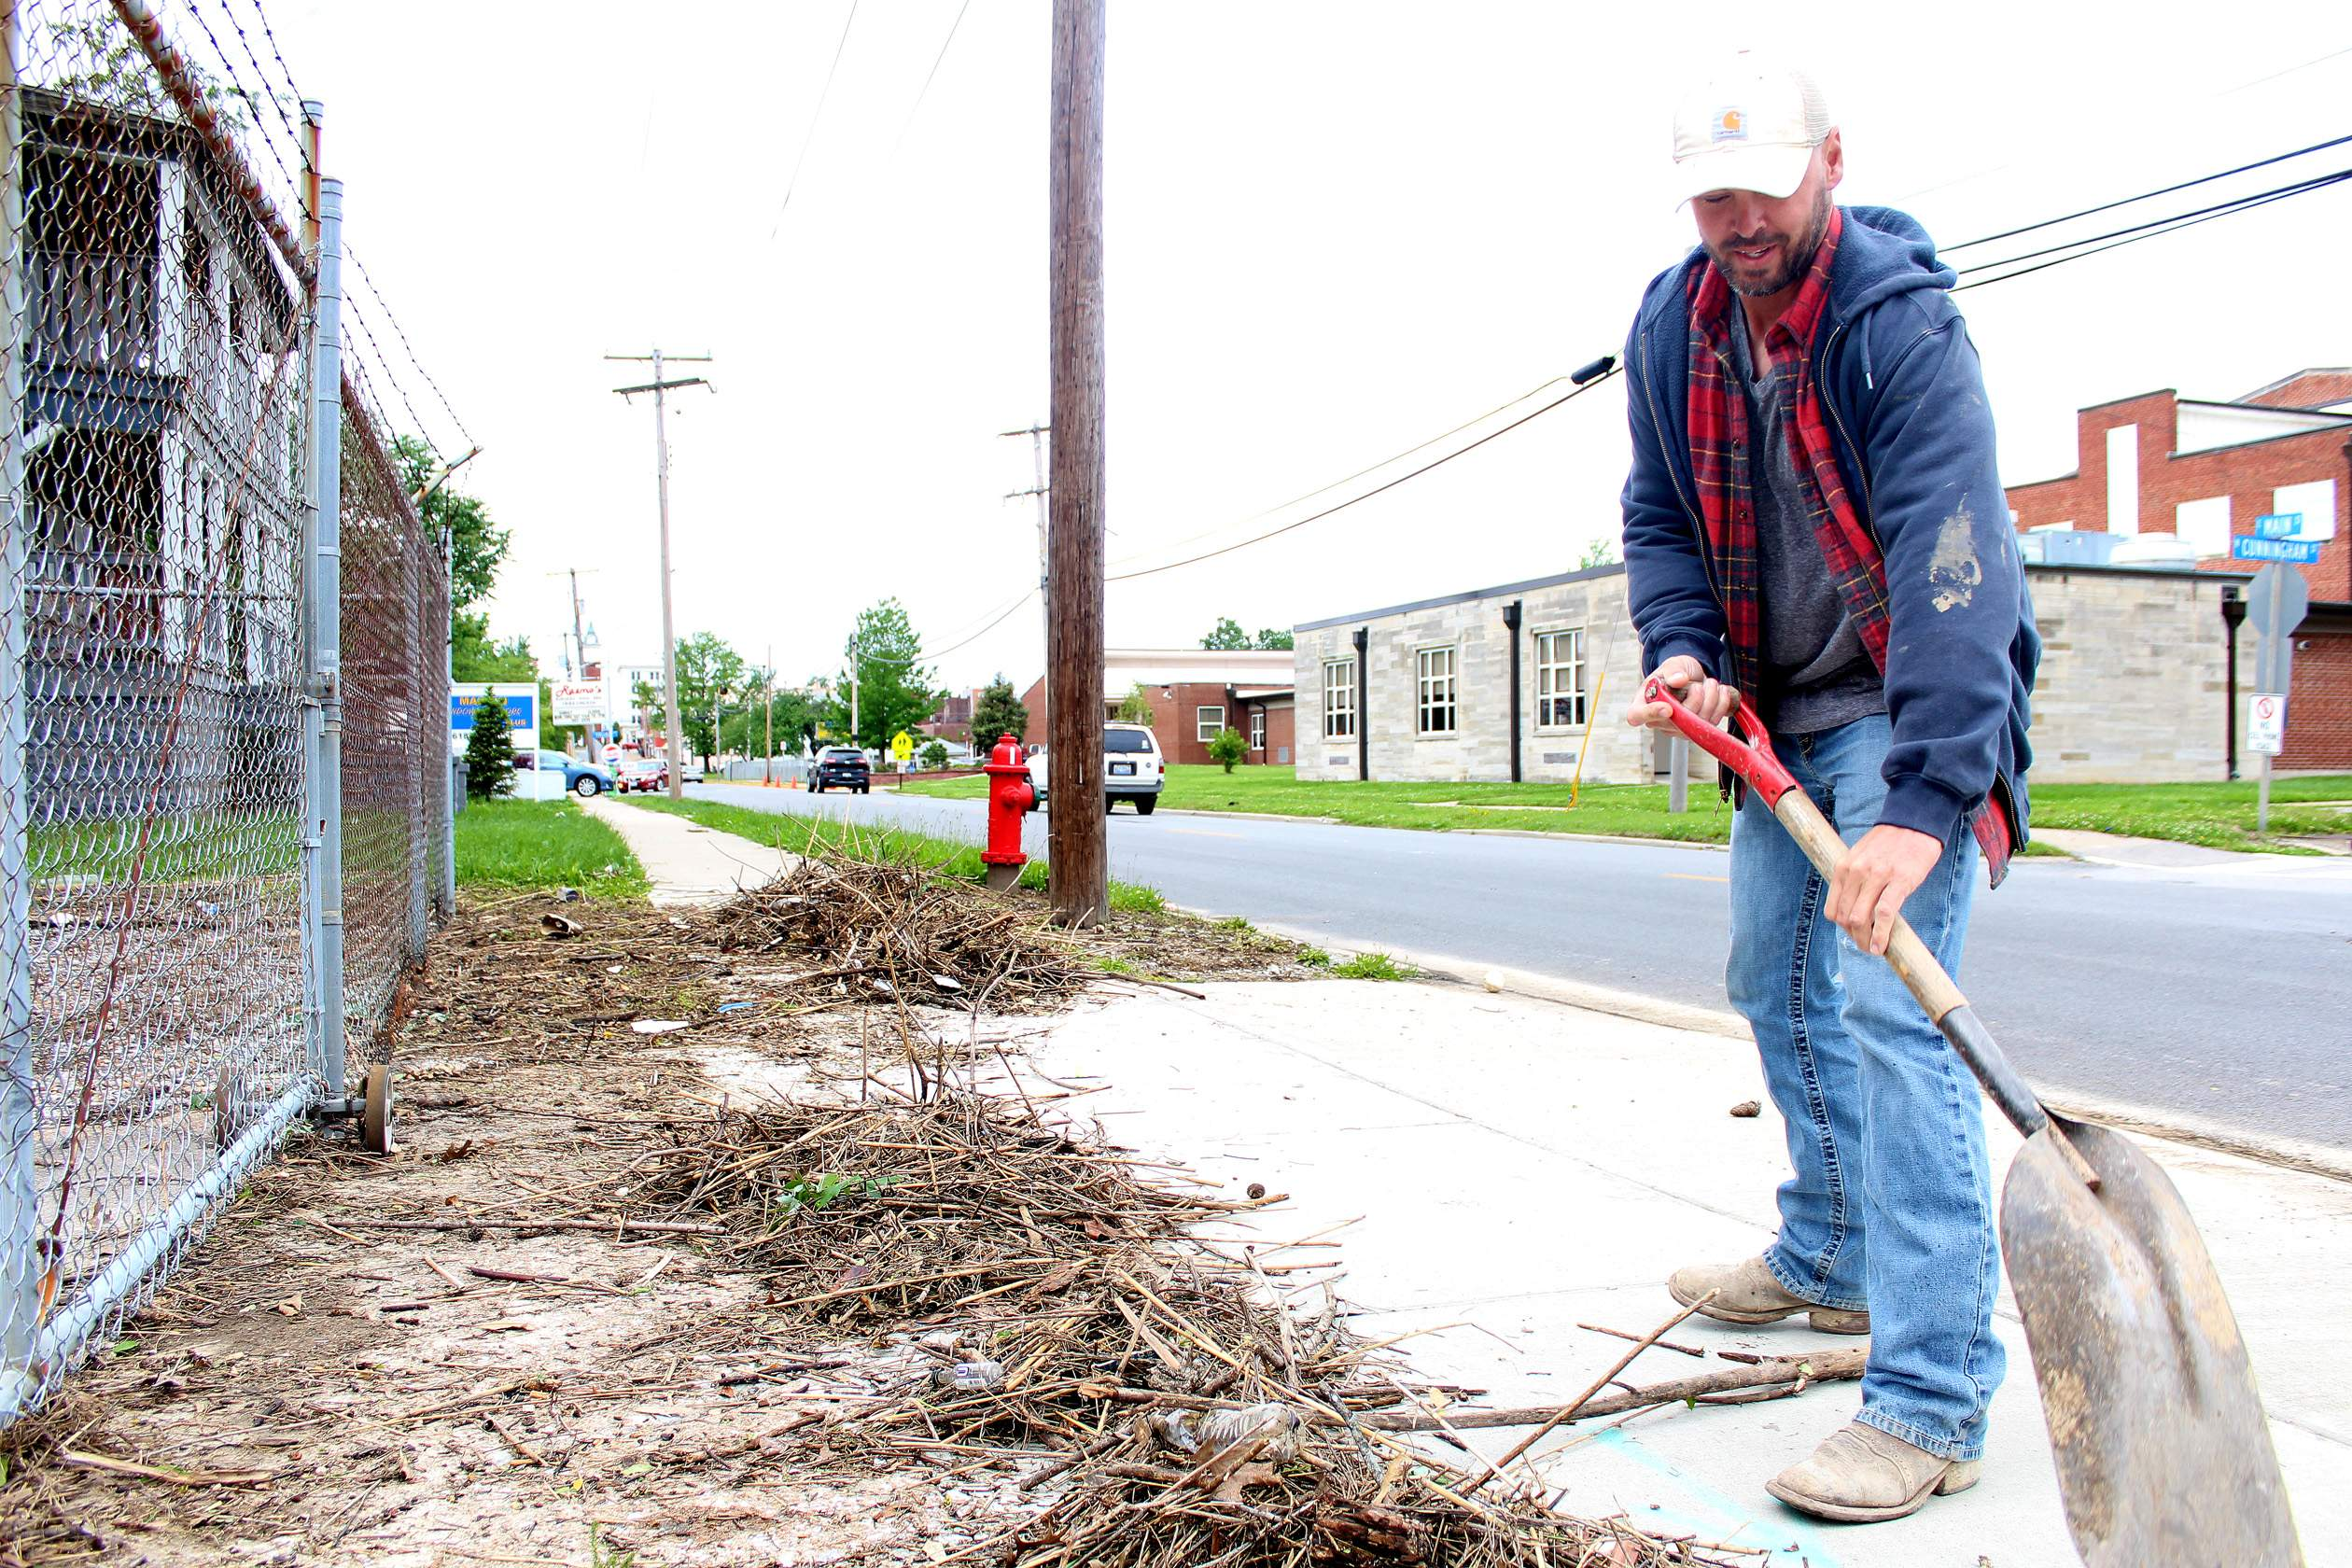 Marion Street Department worker Eddie Frey scoops up debris alongside East Main Street in downtown Marion on Monday. The weekend's storms had left sticks, branches, and other messes in the roads, along gutters, and caught in fences for Frey and city employees to clean up.